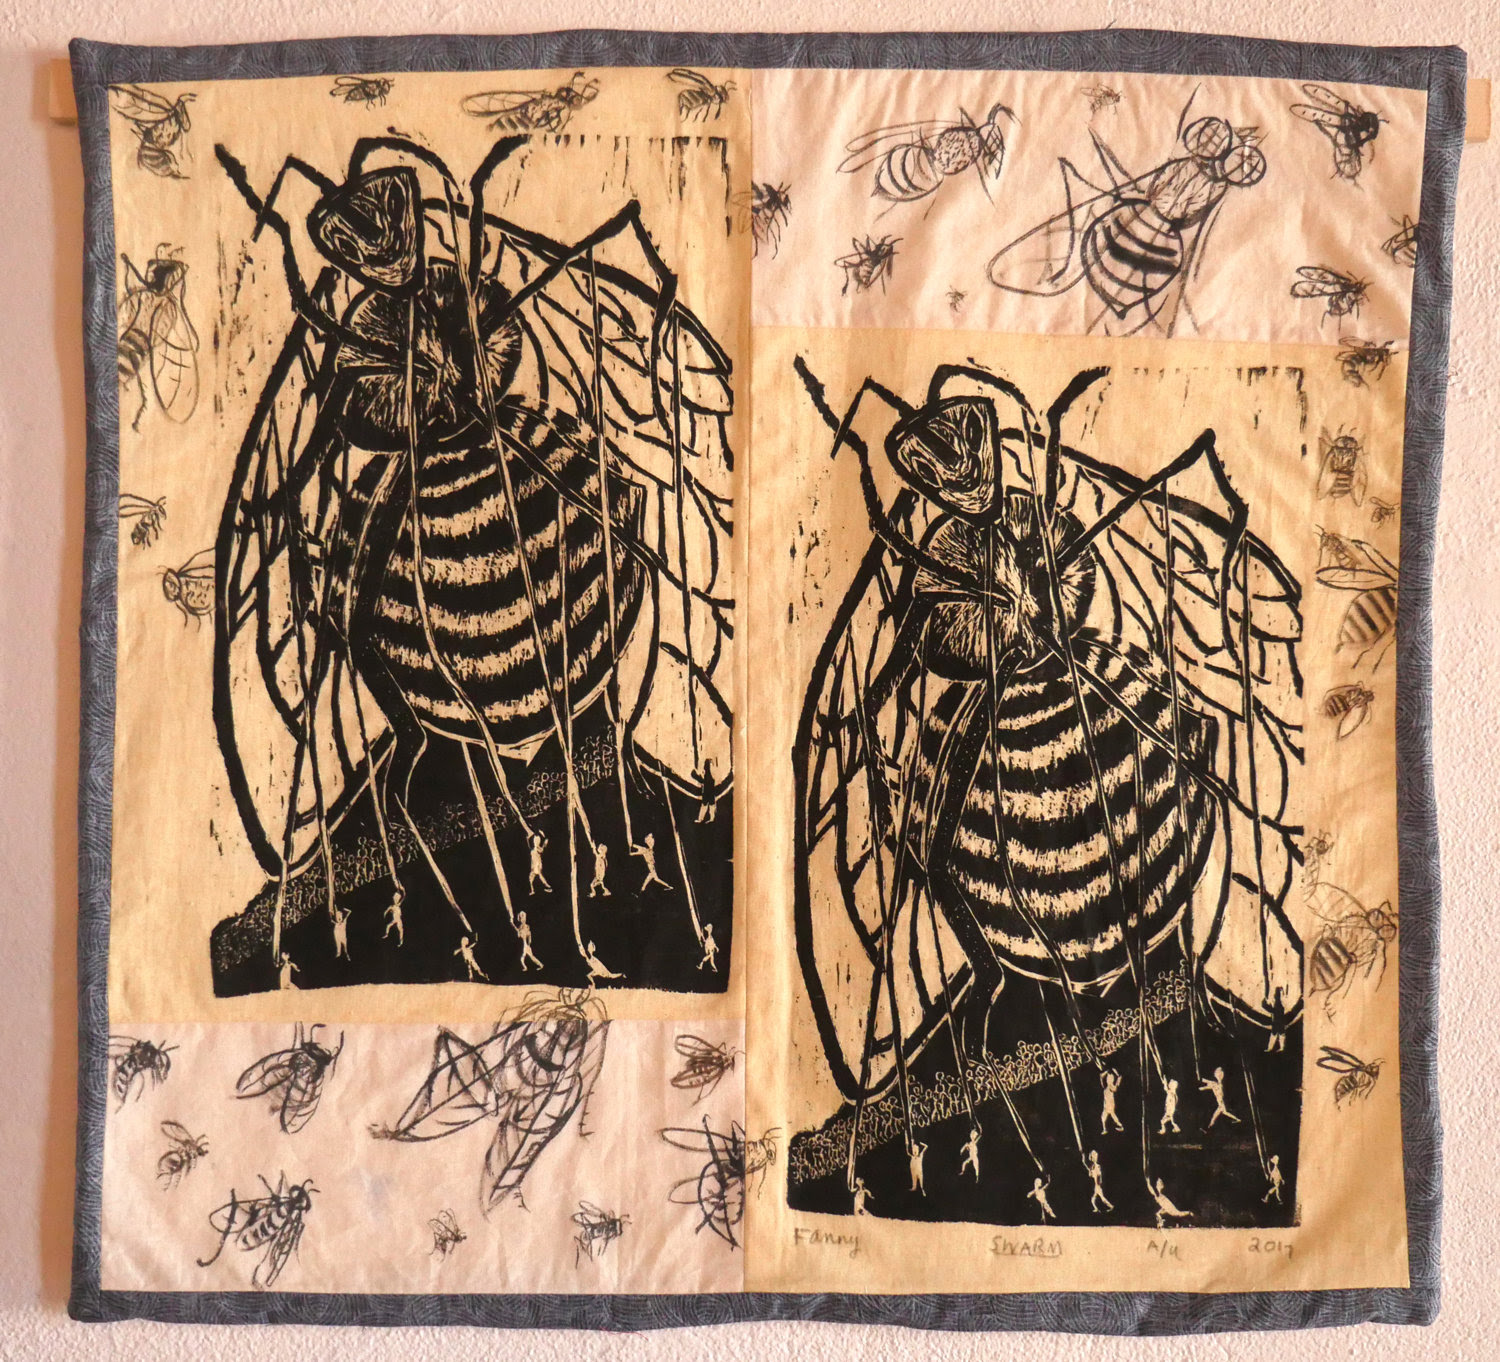 Fay Stanford,  Swarm,  woodcut and ink on cotton